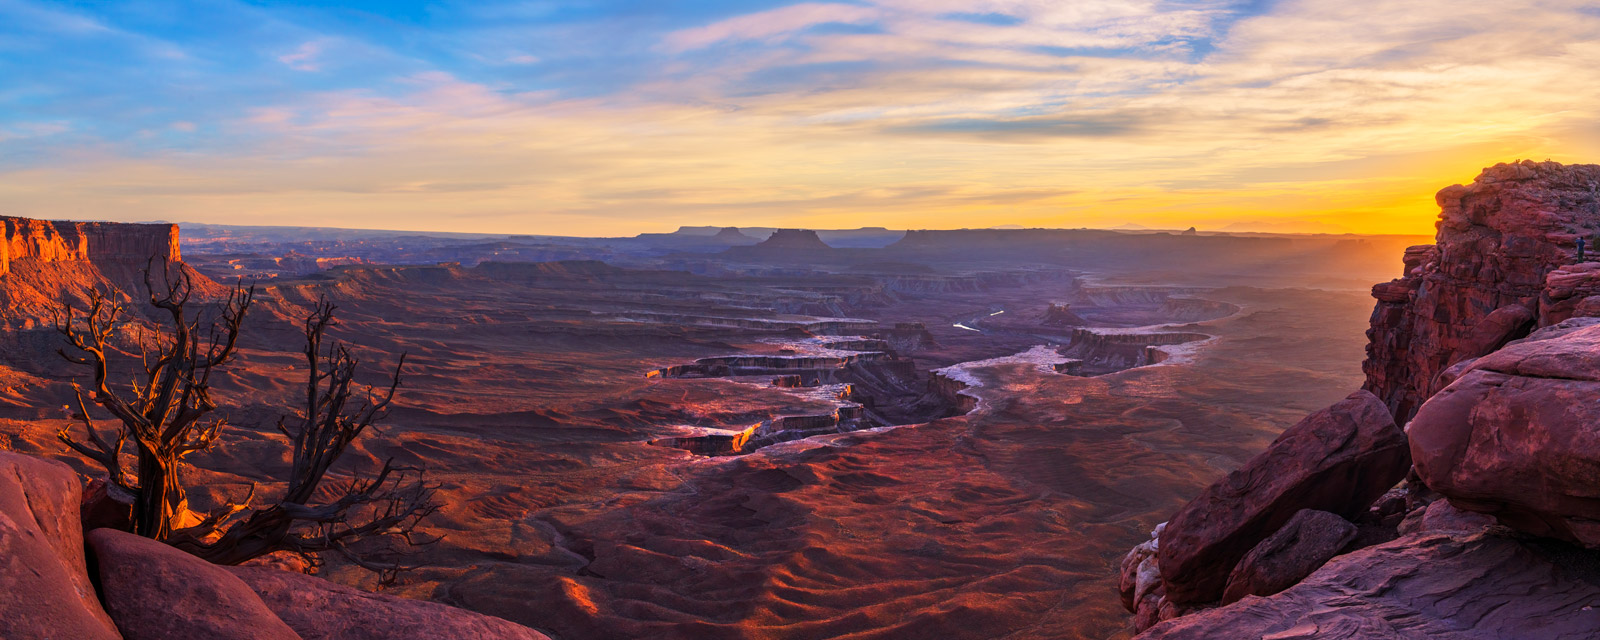 A Limited Edition Fine Art photograph from the Green River Overlook in Canyonlands National Park with the sun setting and lighting...